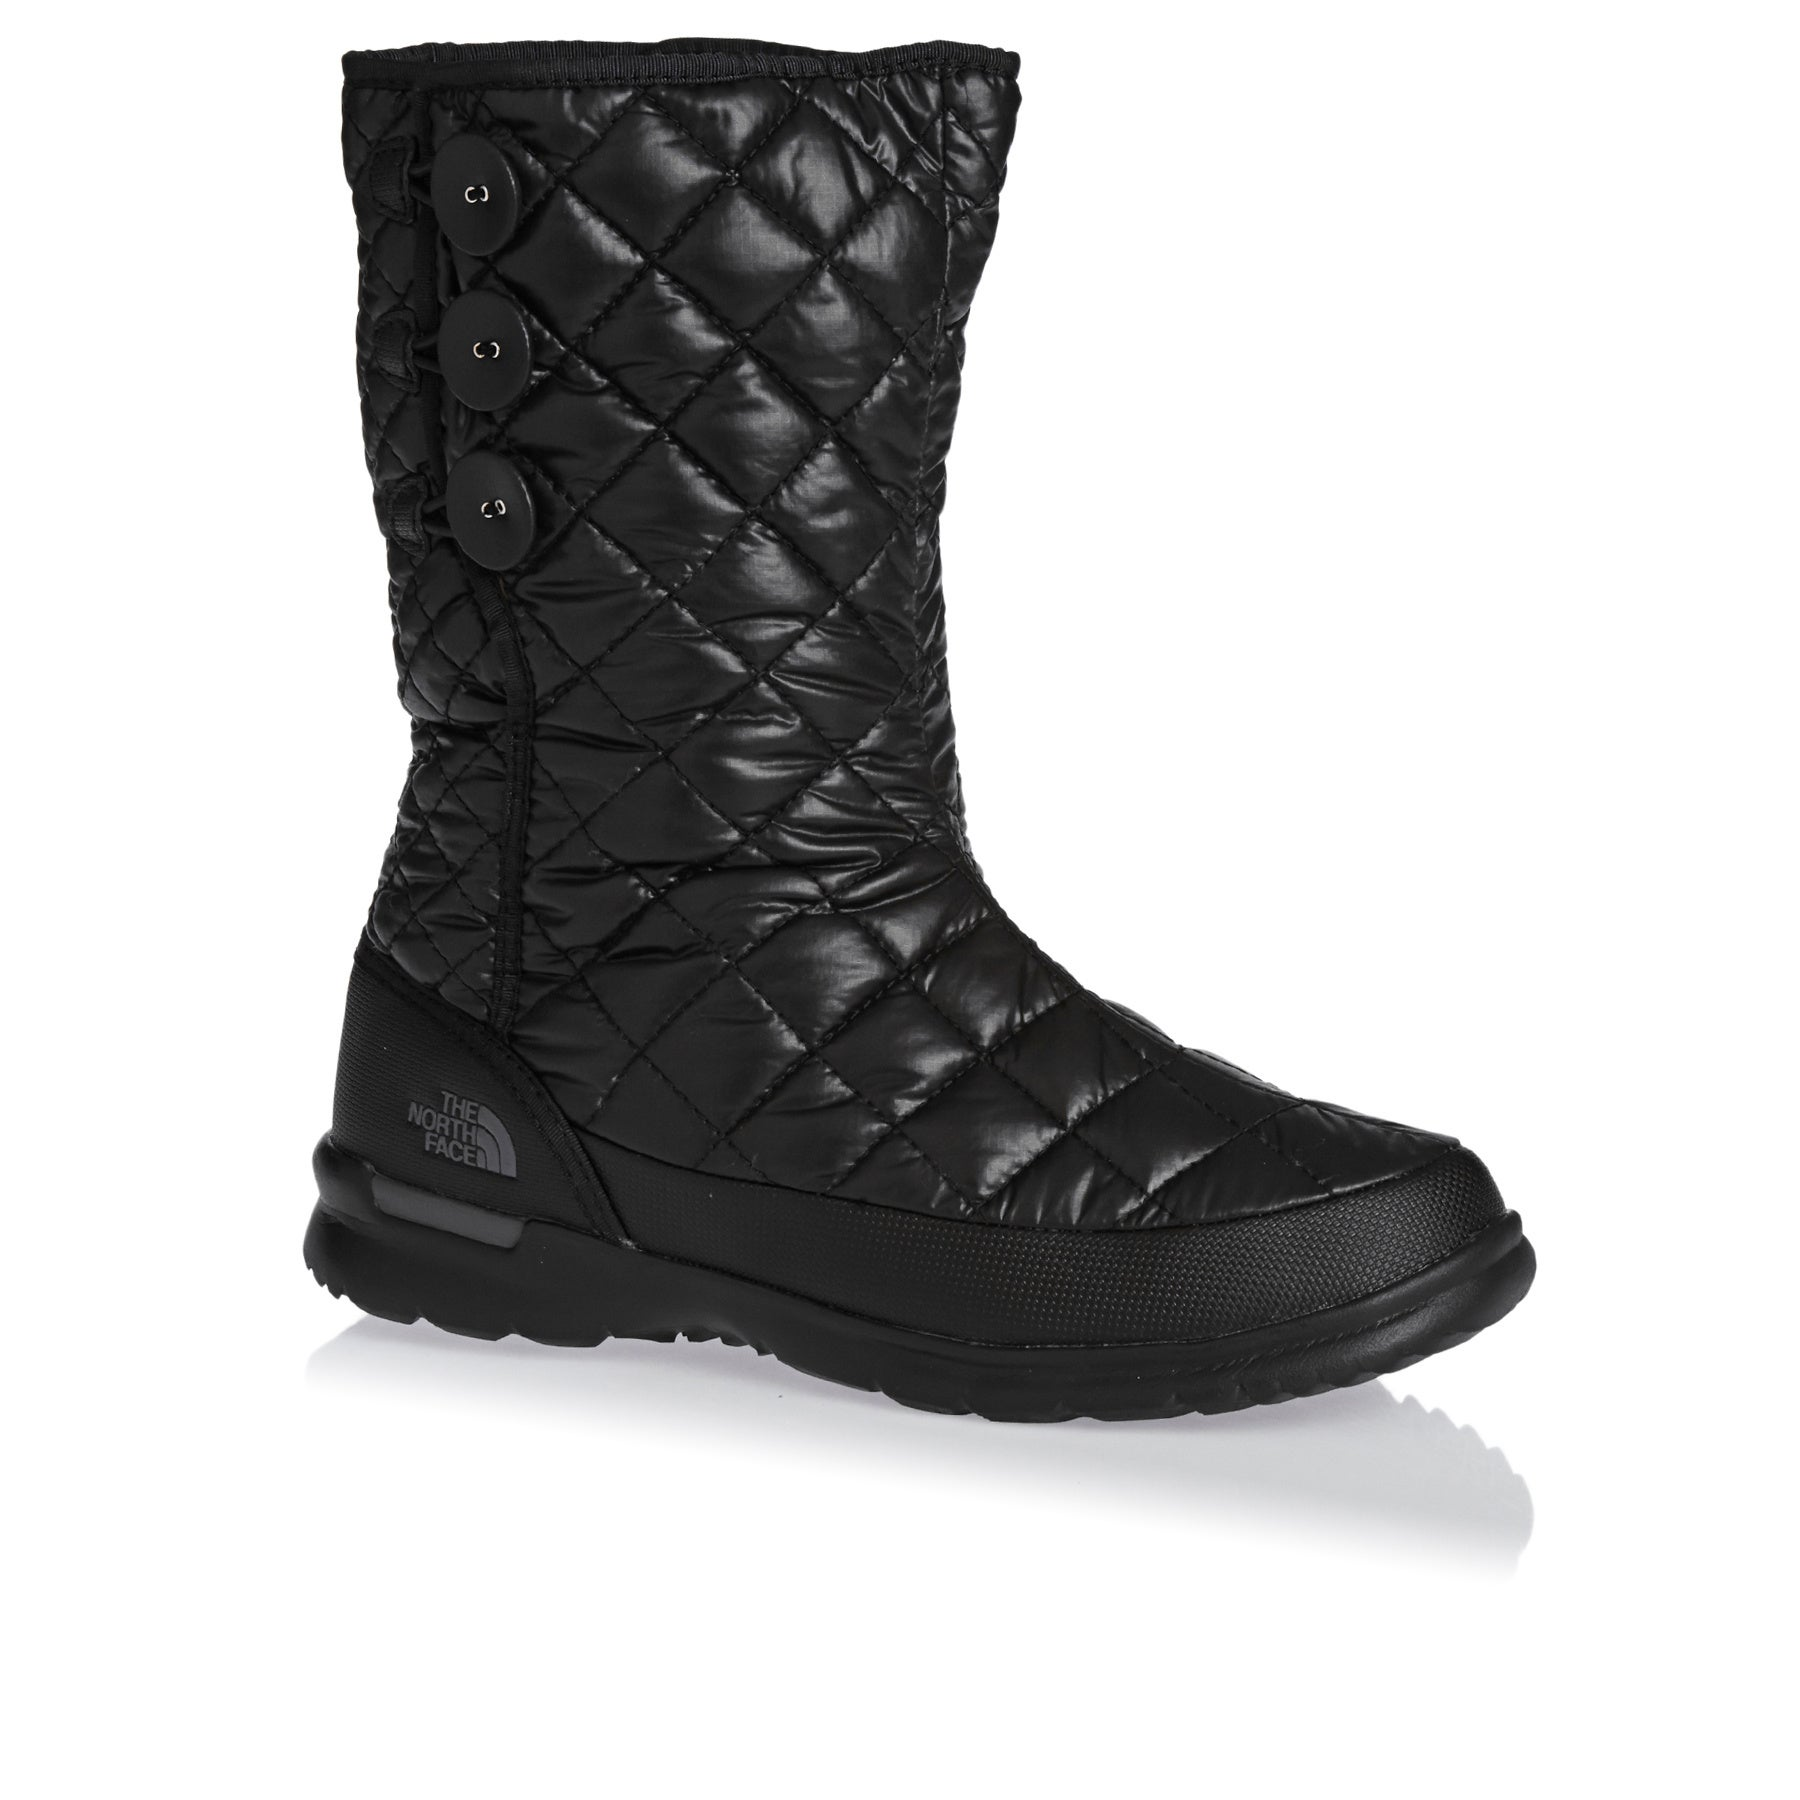 North Face Womens Thermoball Buttonup Insulated Womens Boots - Black